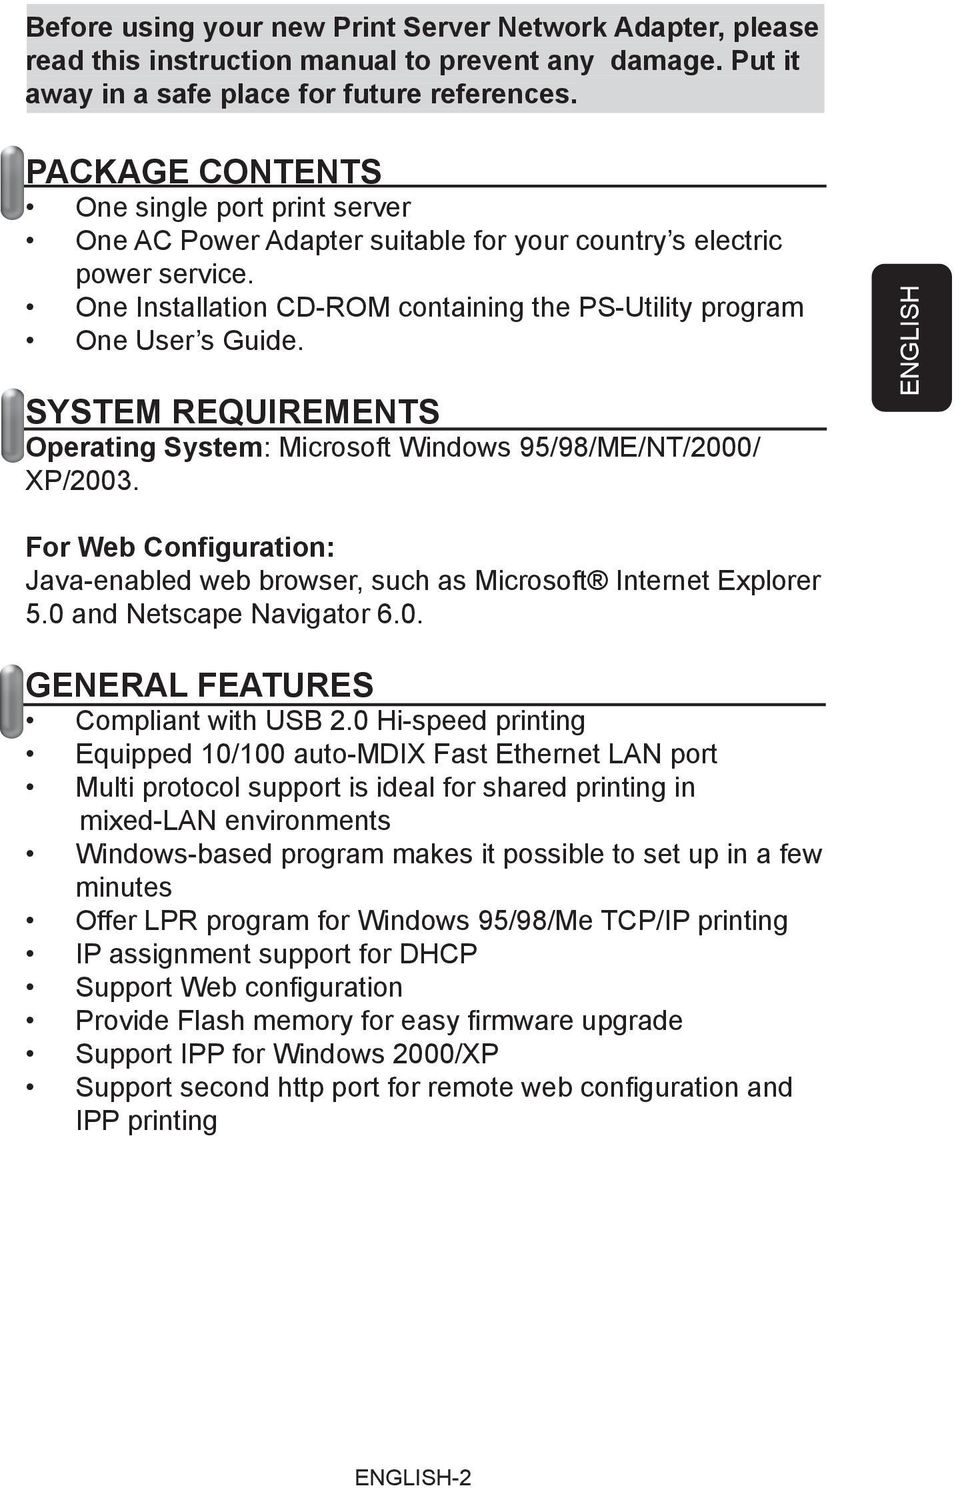 SYSTEM REQUIREMENTS Operating System: Microsoft Windows 95/98/ME/NT/2000/ XP/2003. ENGLISH For Web Configuration: Java-enabled web browser, such as Microsoft Internet Explorer 5.